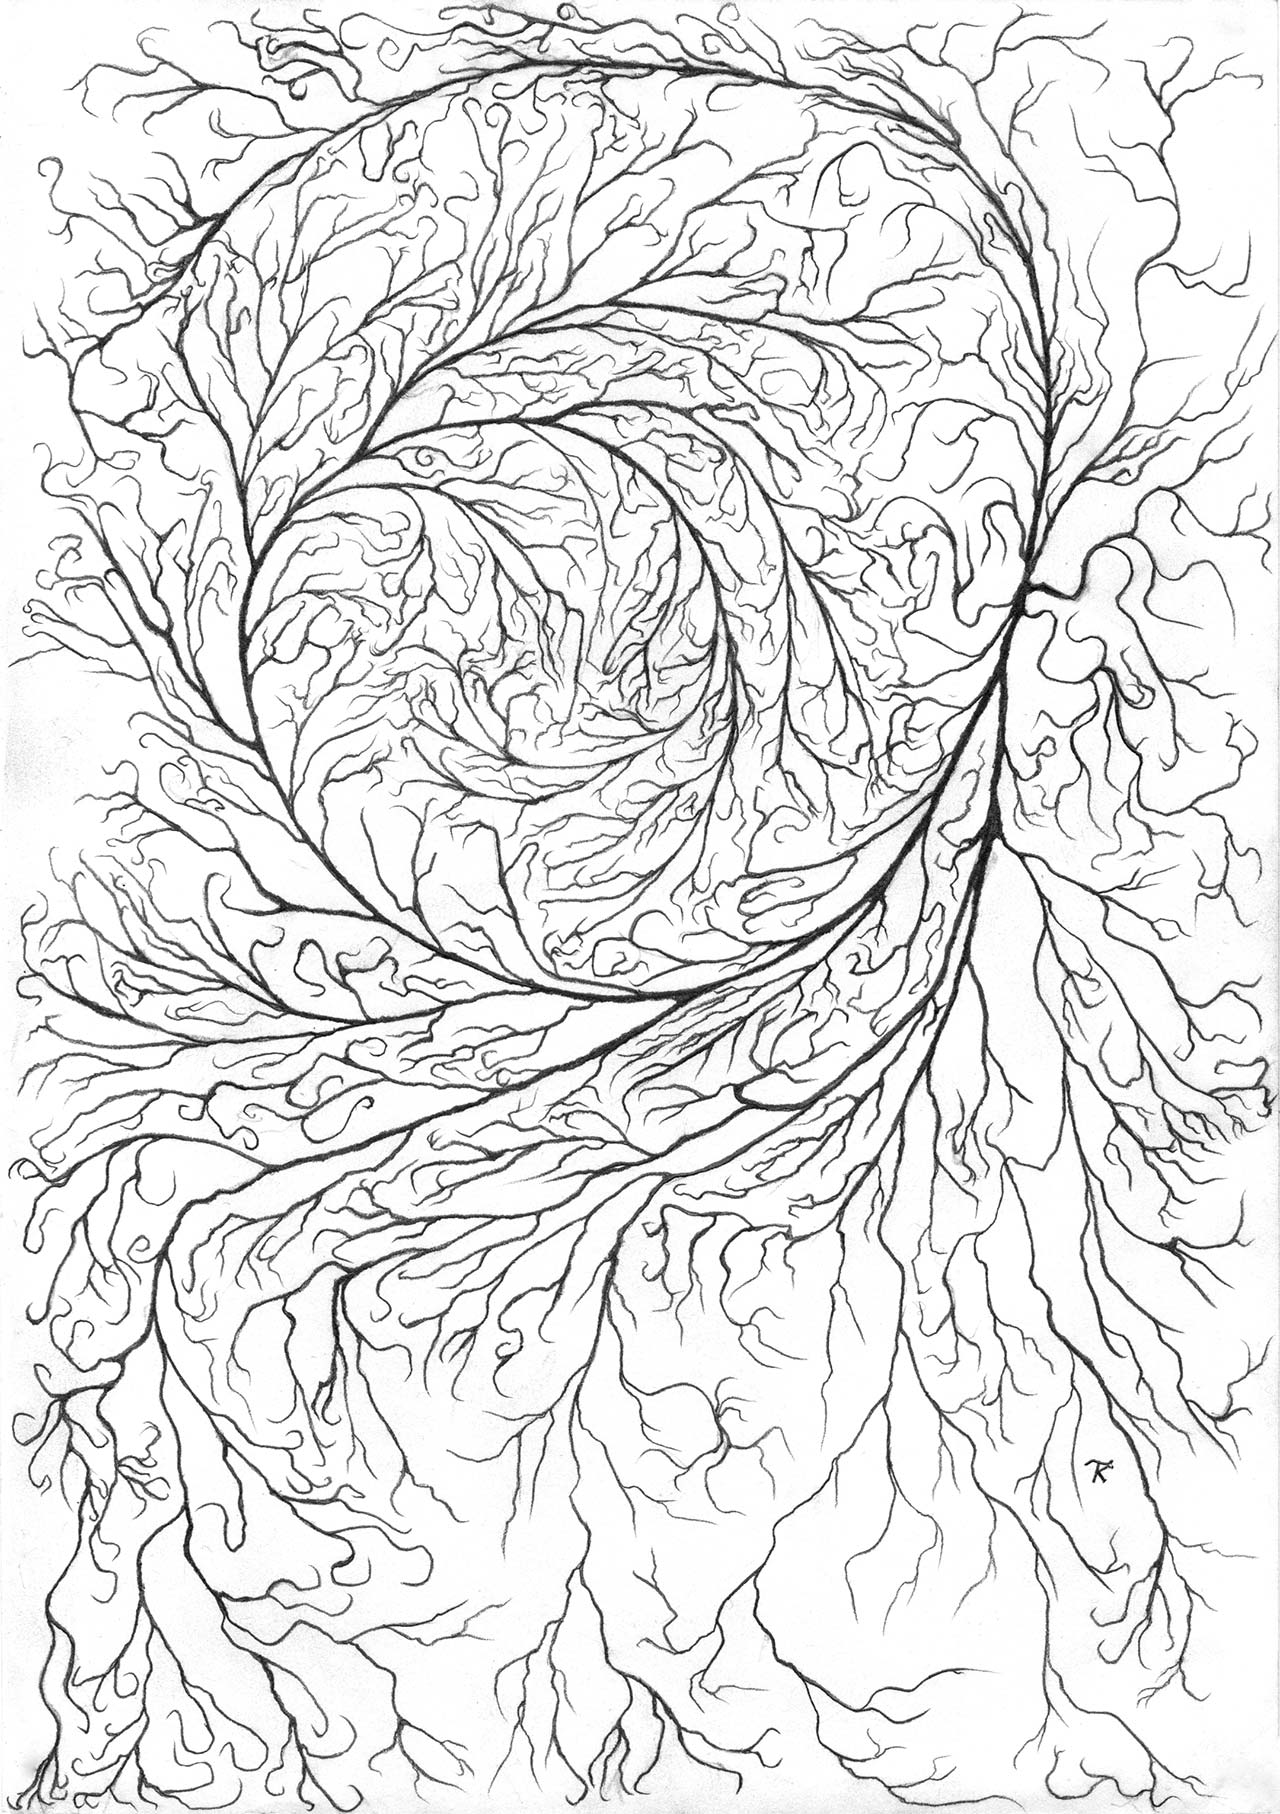 Roots drawing